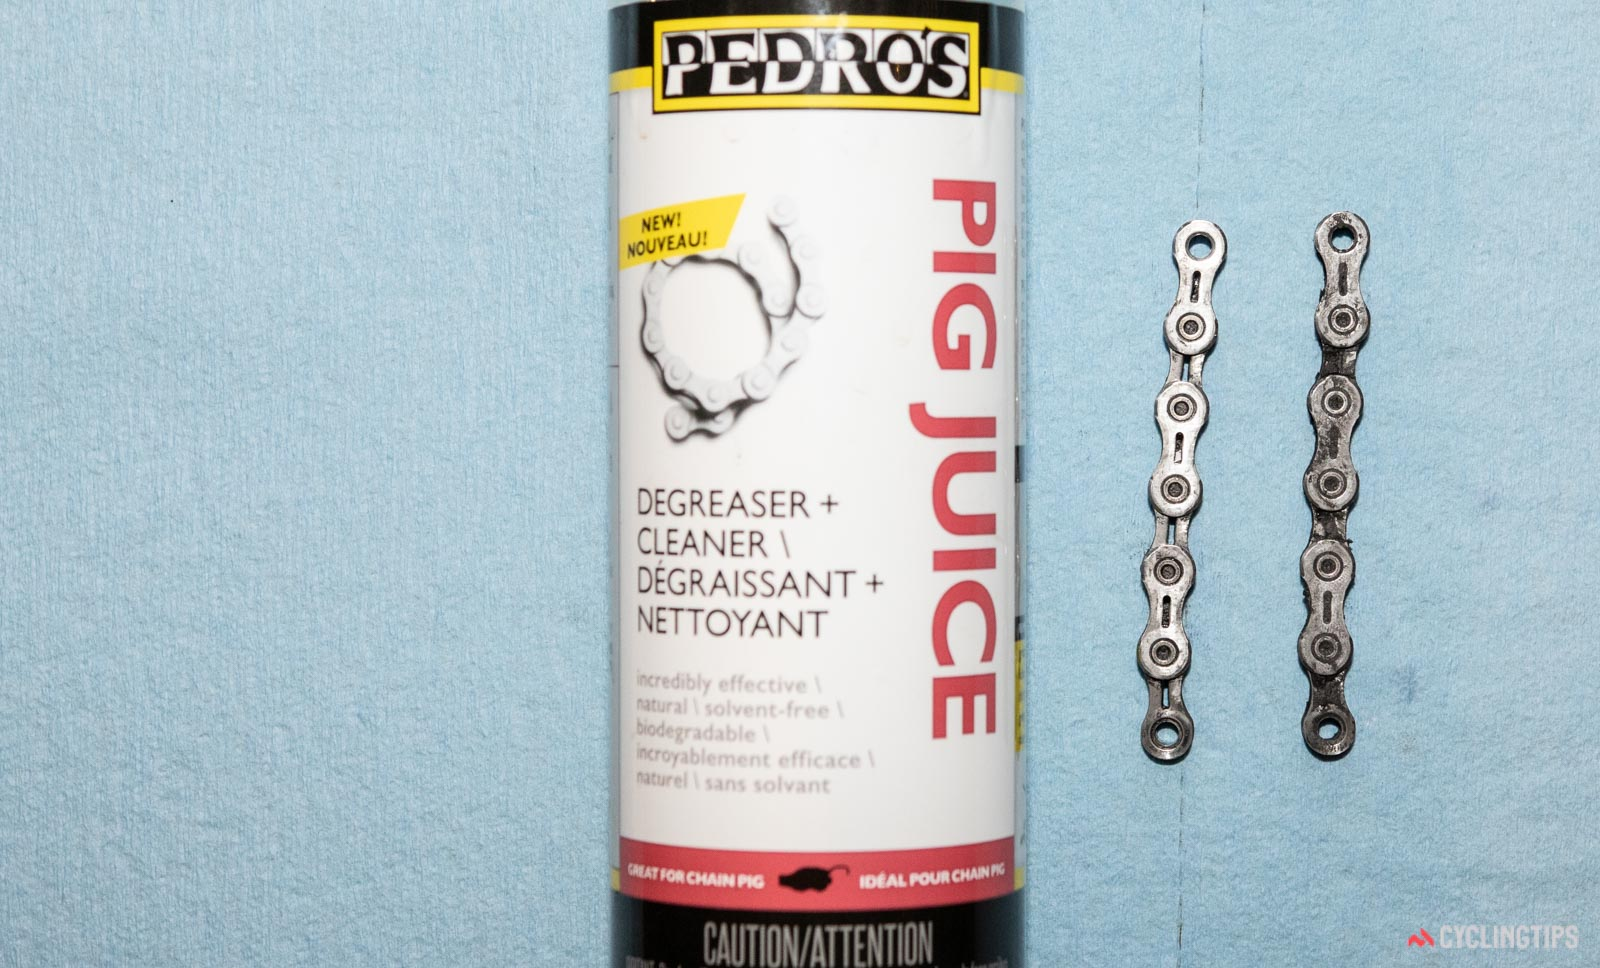 Pedro's Pig Juice degreaser